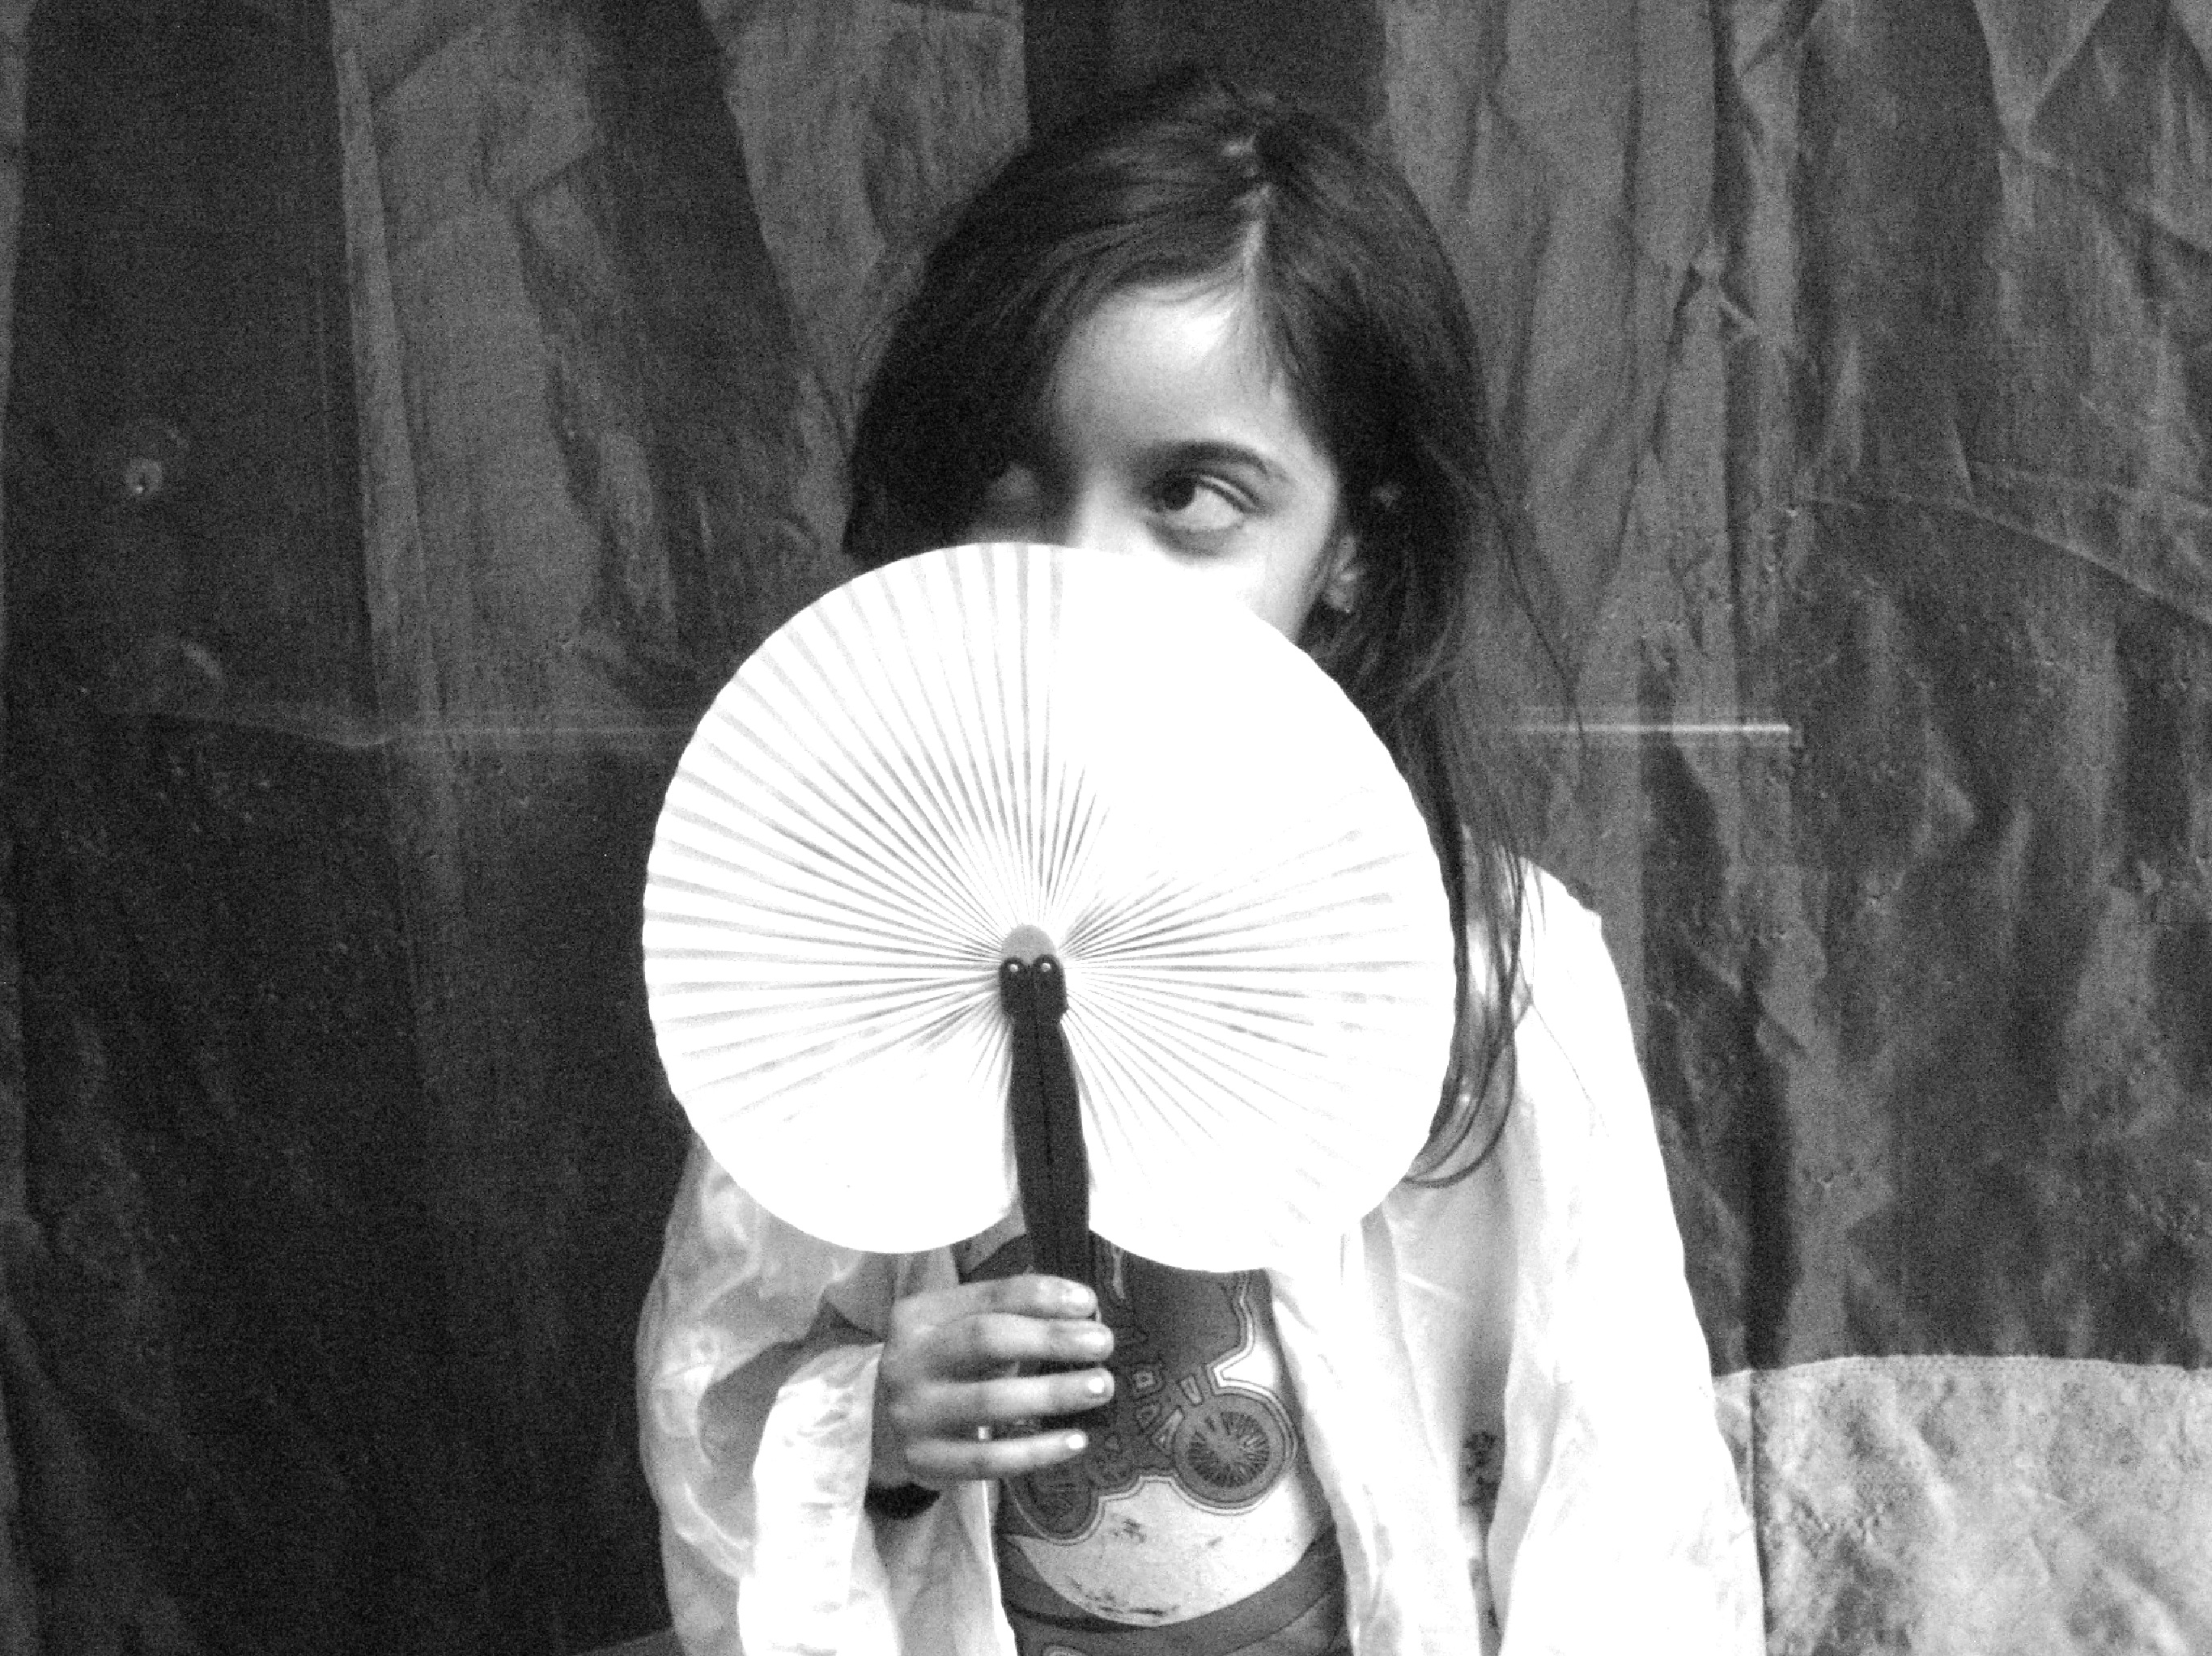 Girl posing with fan